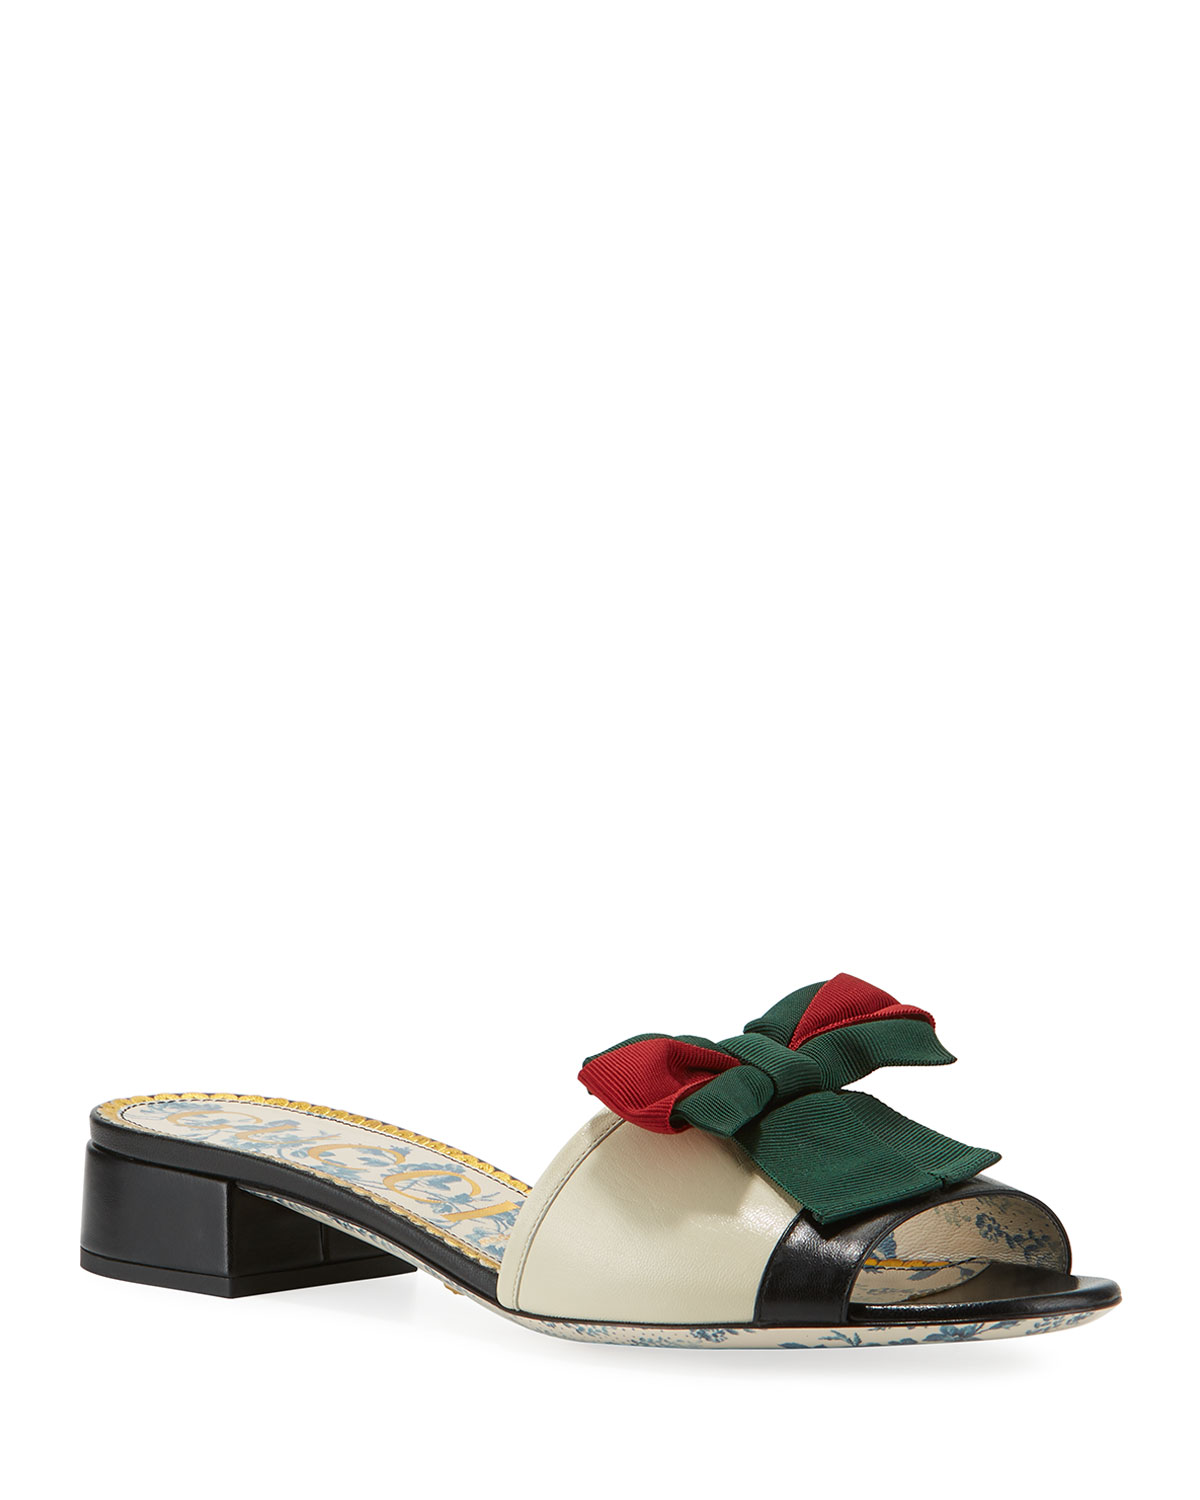 LEATHER SLIDE SANDAL WITH WEB BOW